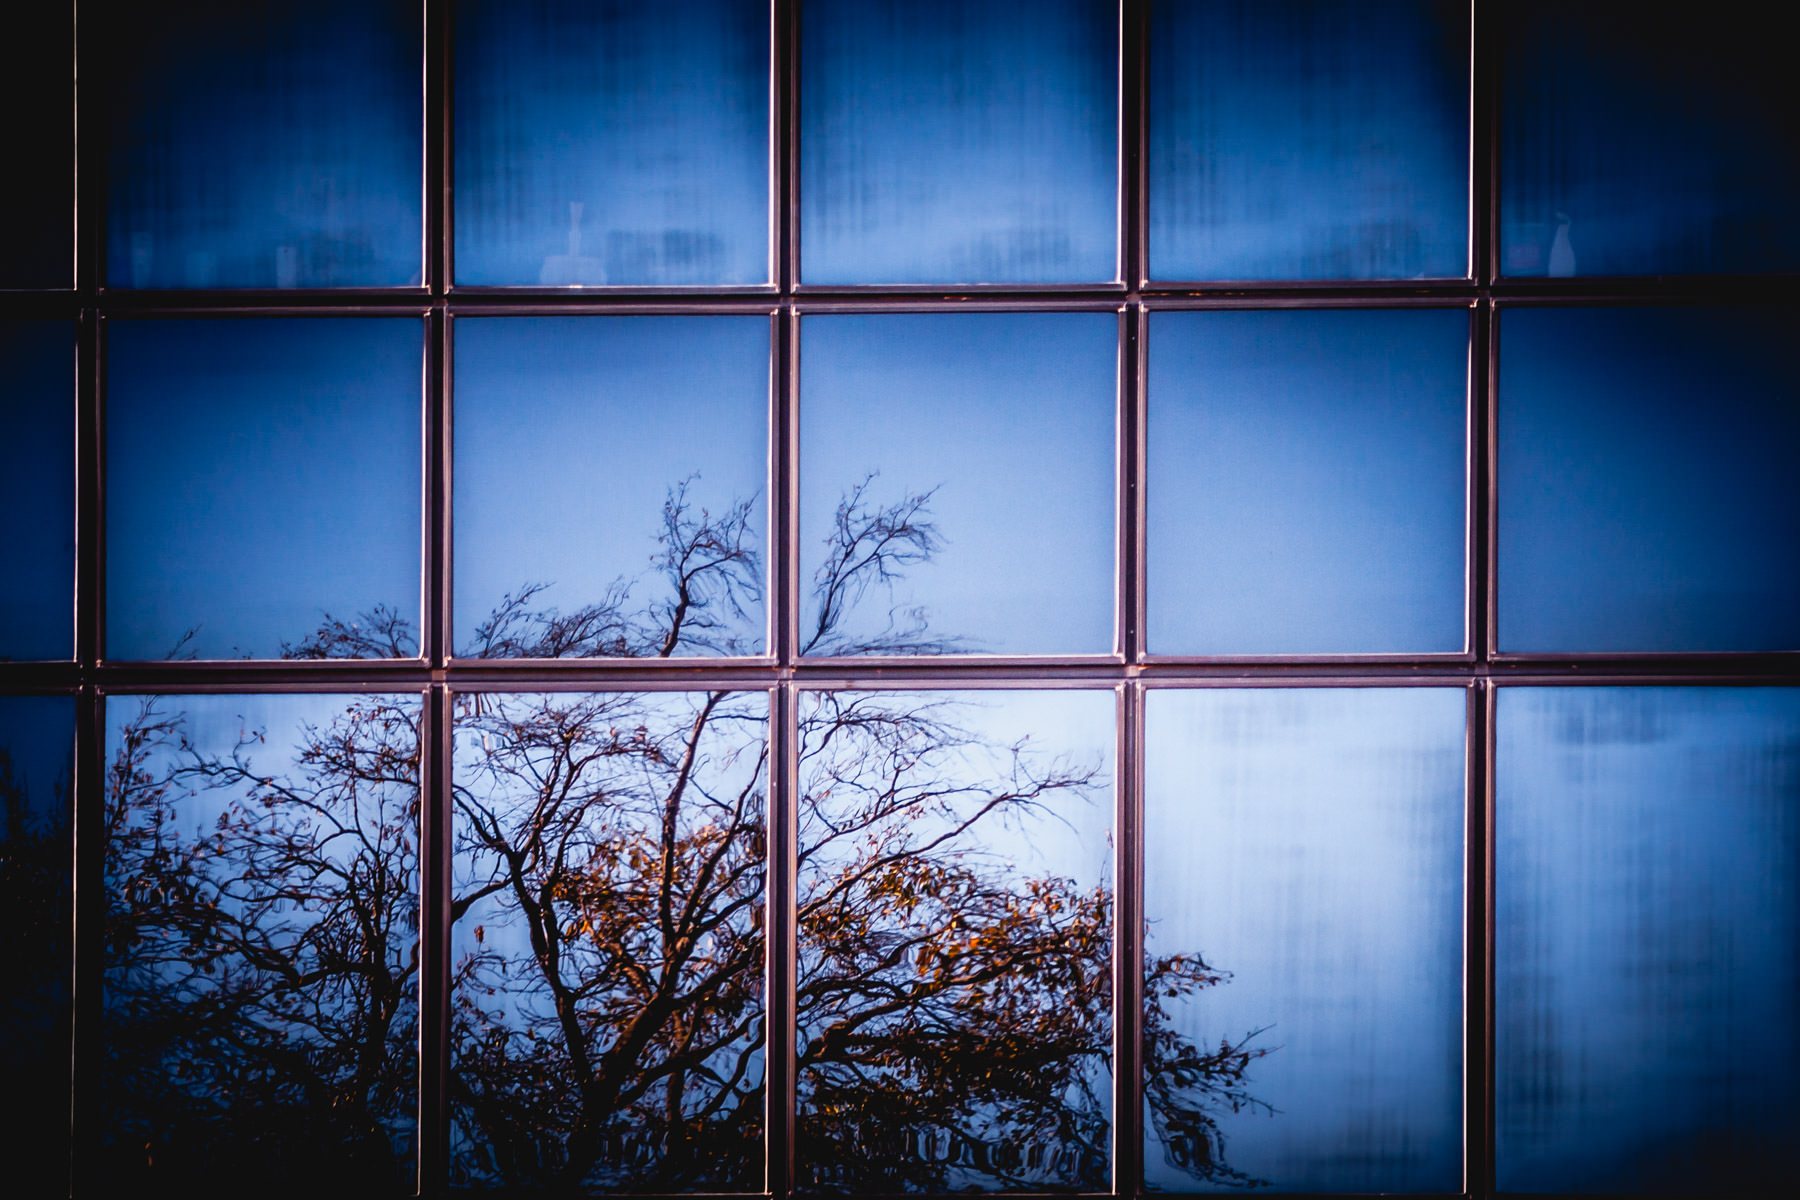 A tree is reflected in the windows of an adjacent building in Downtown Tyler, Texas.